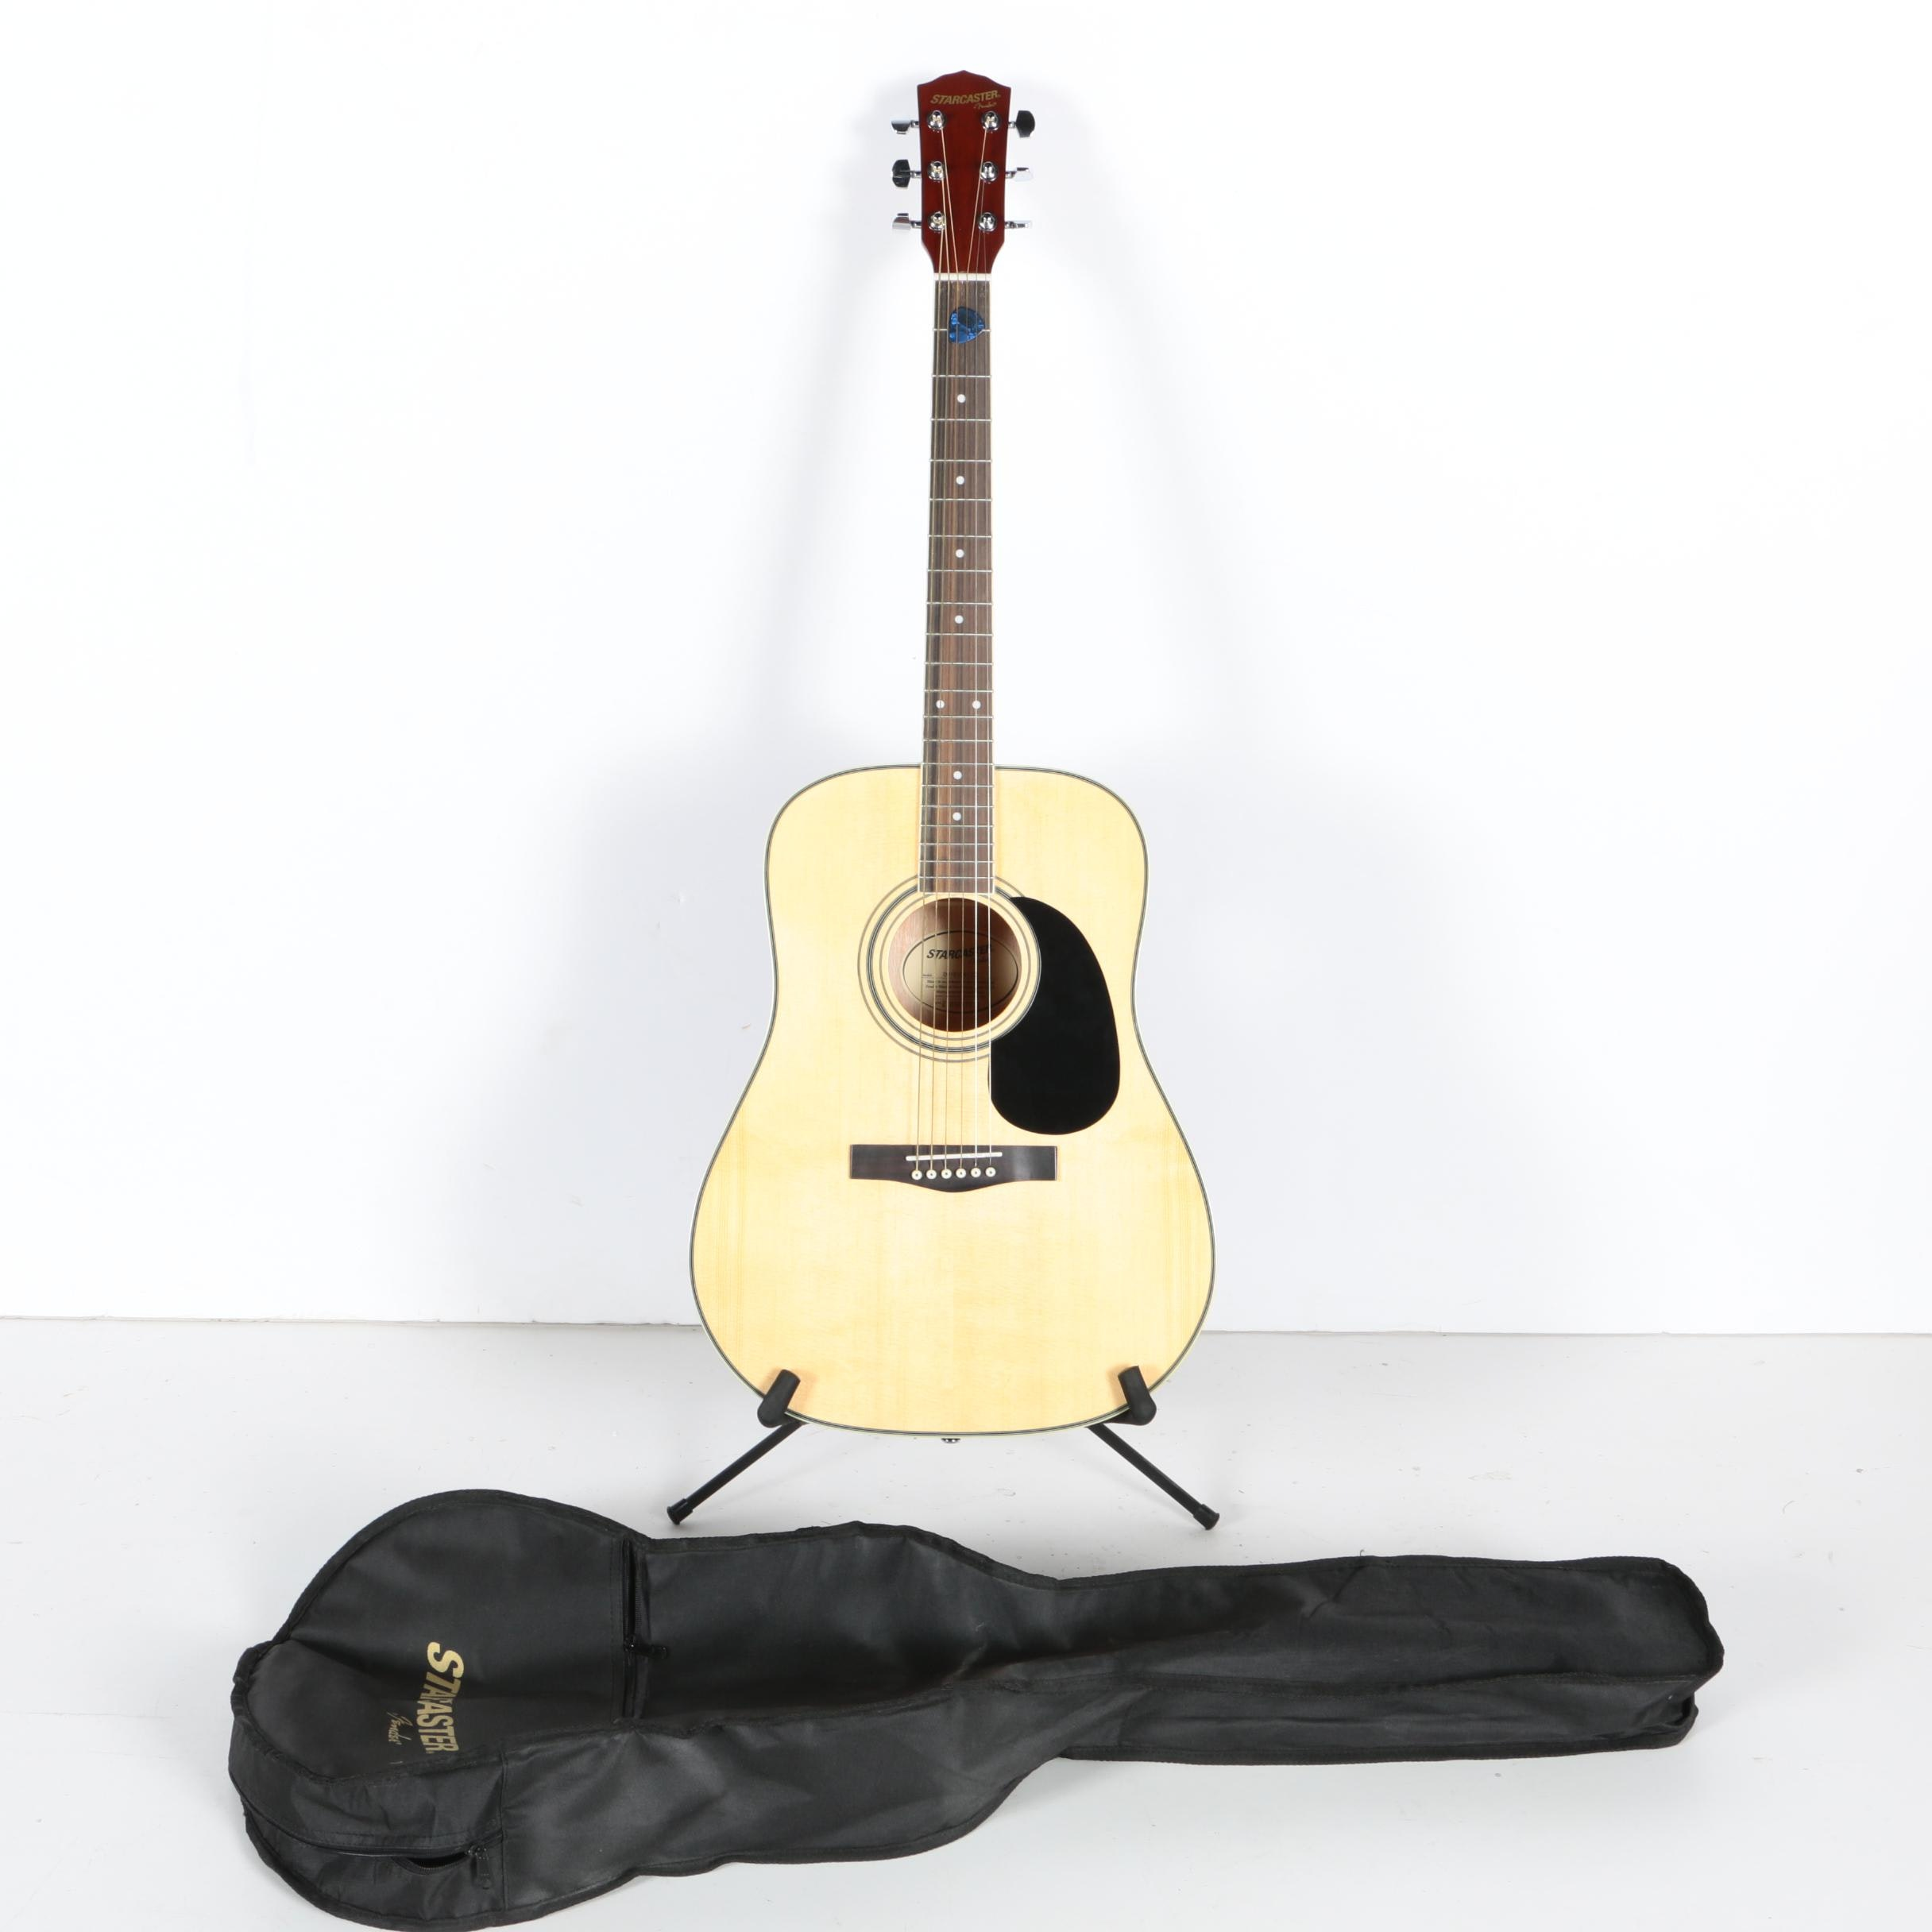 Fender Starcaster Acoustic Guitar with Gig Bag, Stand, and Accessories